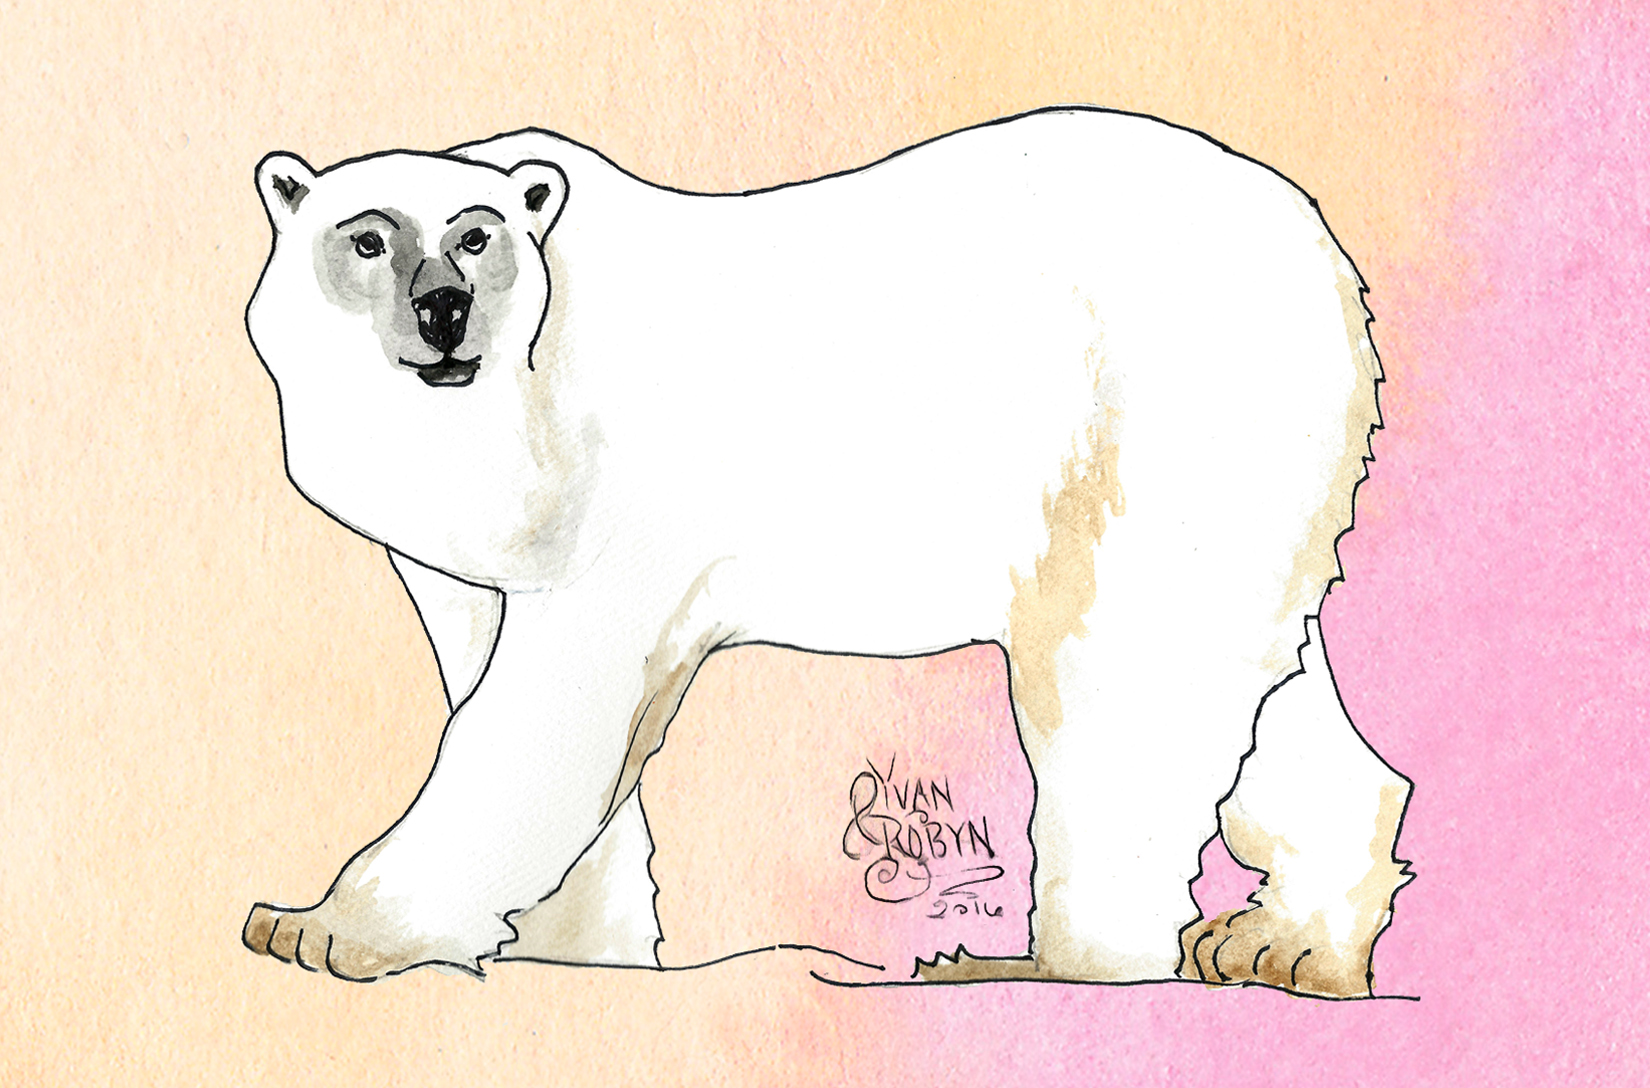 Polar Bear Totem Animal  | Custom illustration for Yvan & Robyn's wedding | 2016